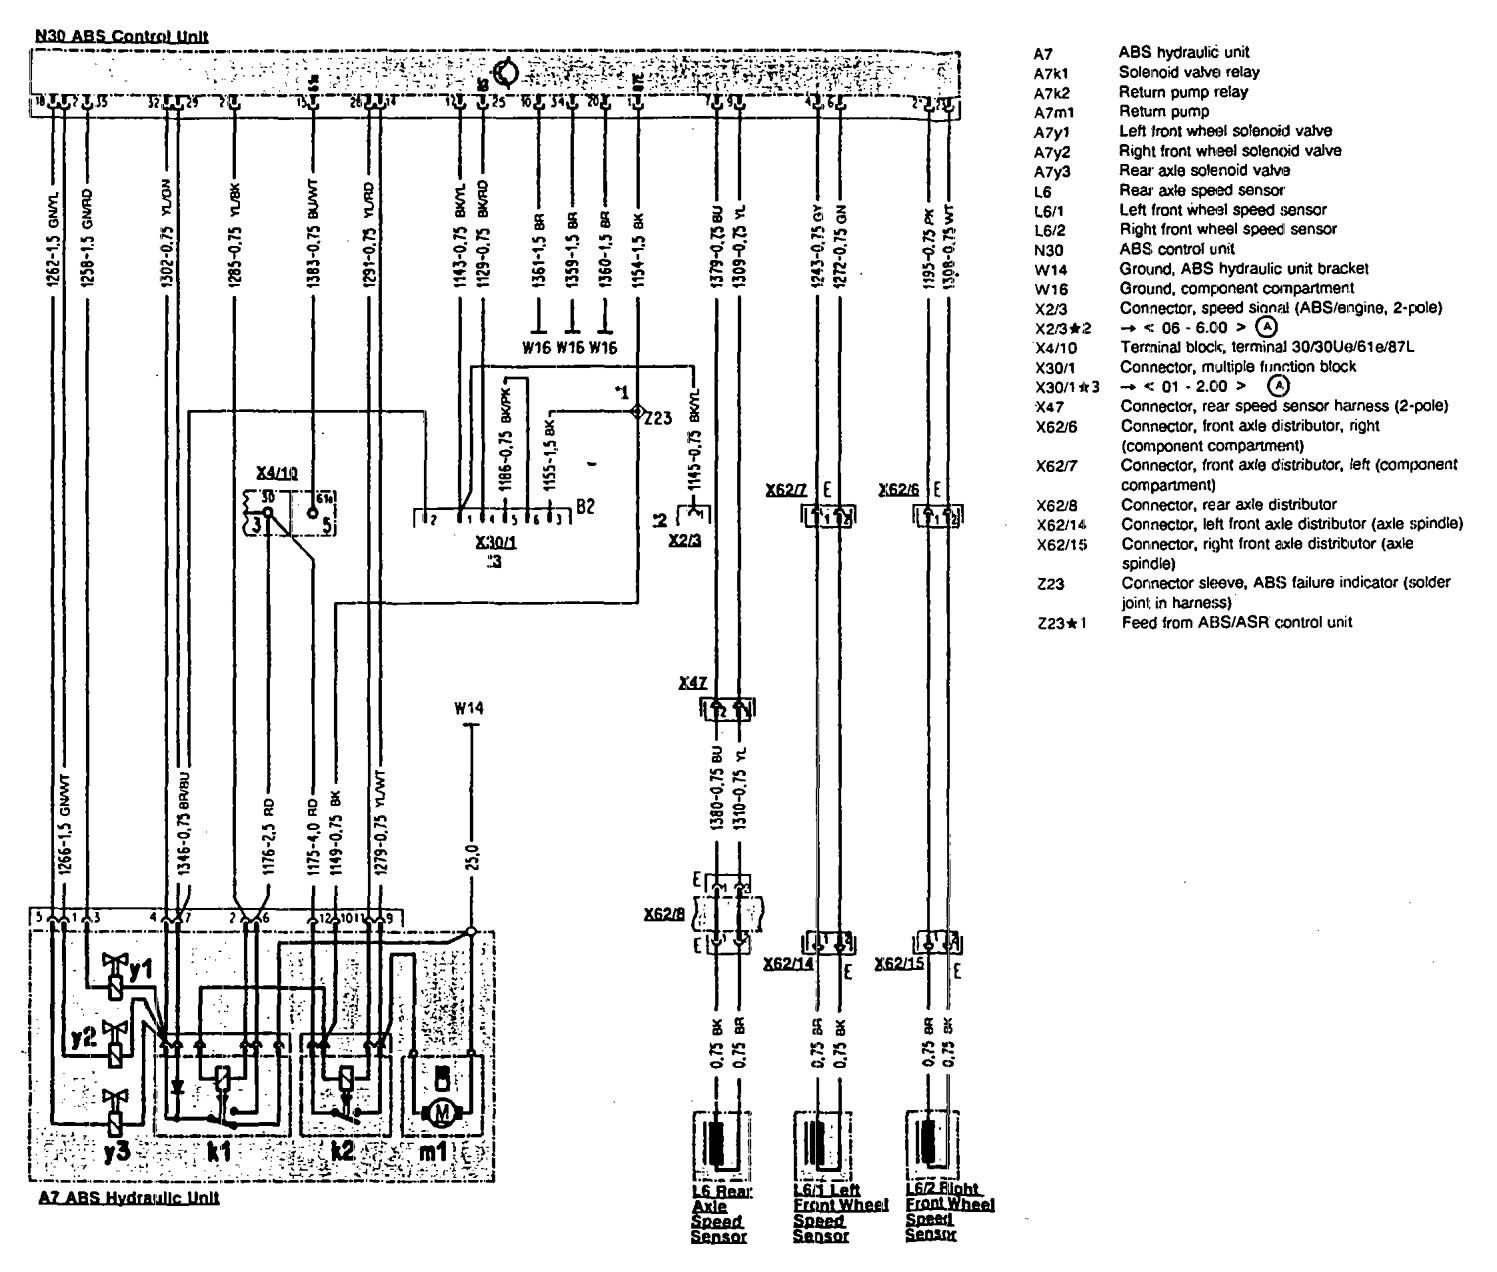 hight resolution of 1990 mercedes 500sl wiring diagram mercedes benz 500sl 1990 u2013 1992 u2013